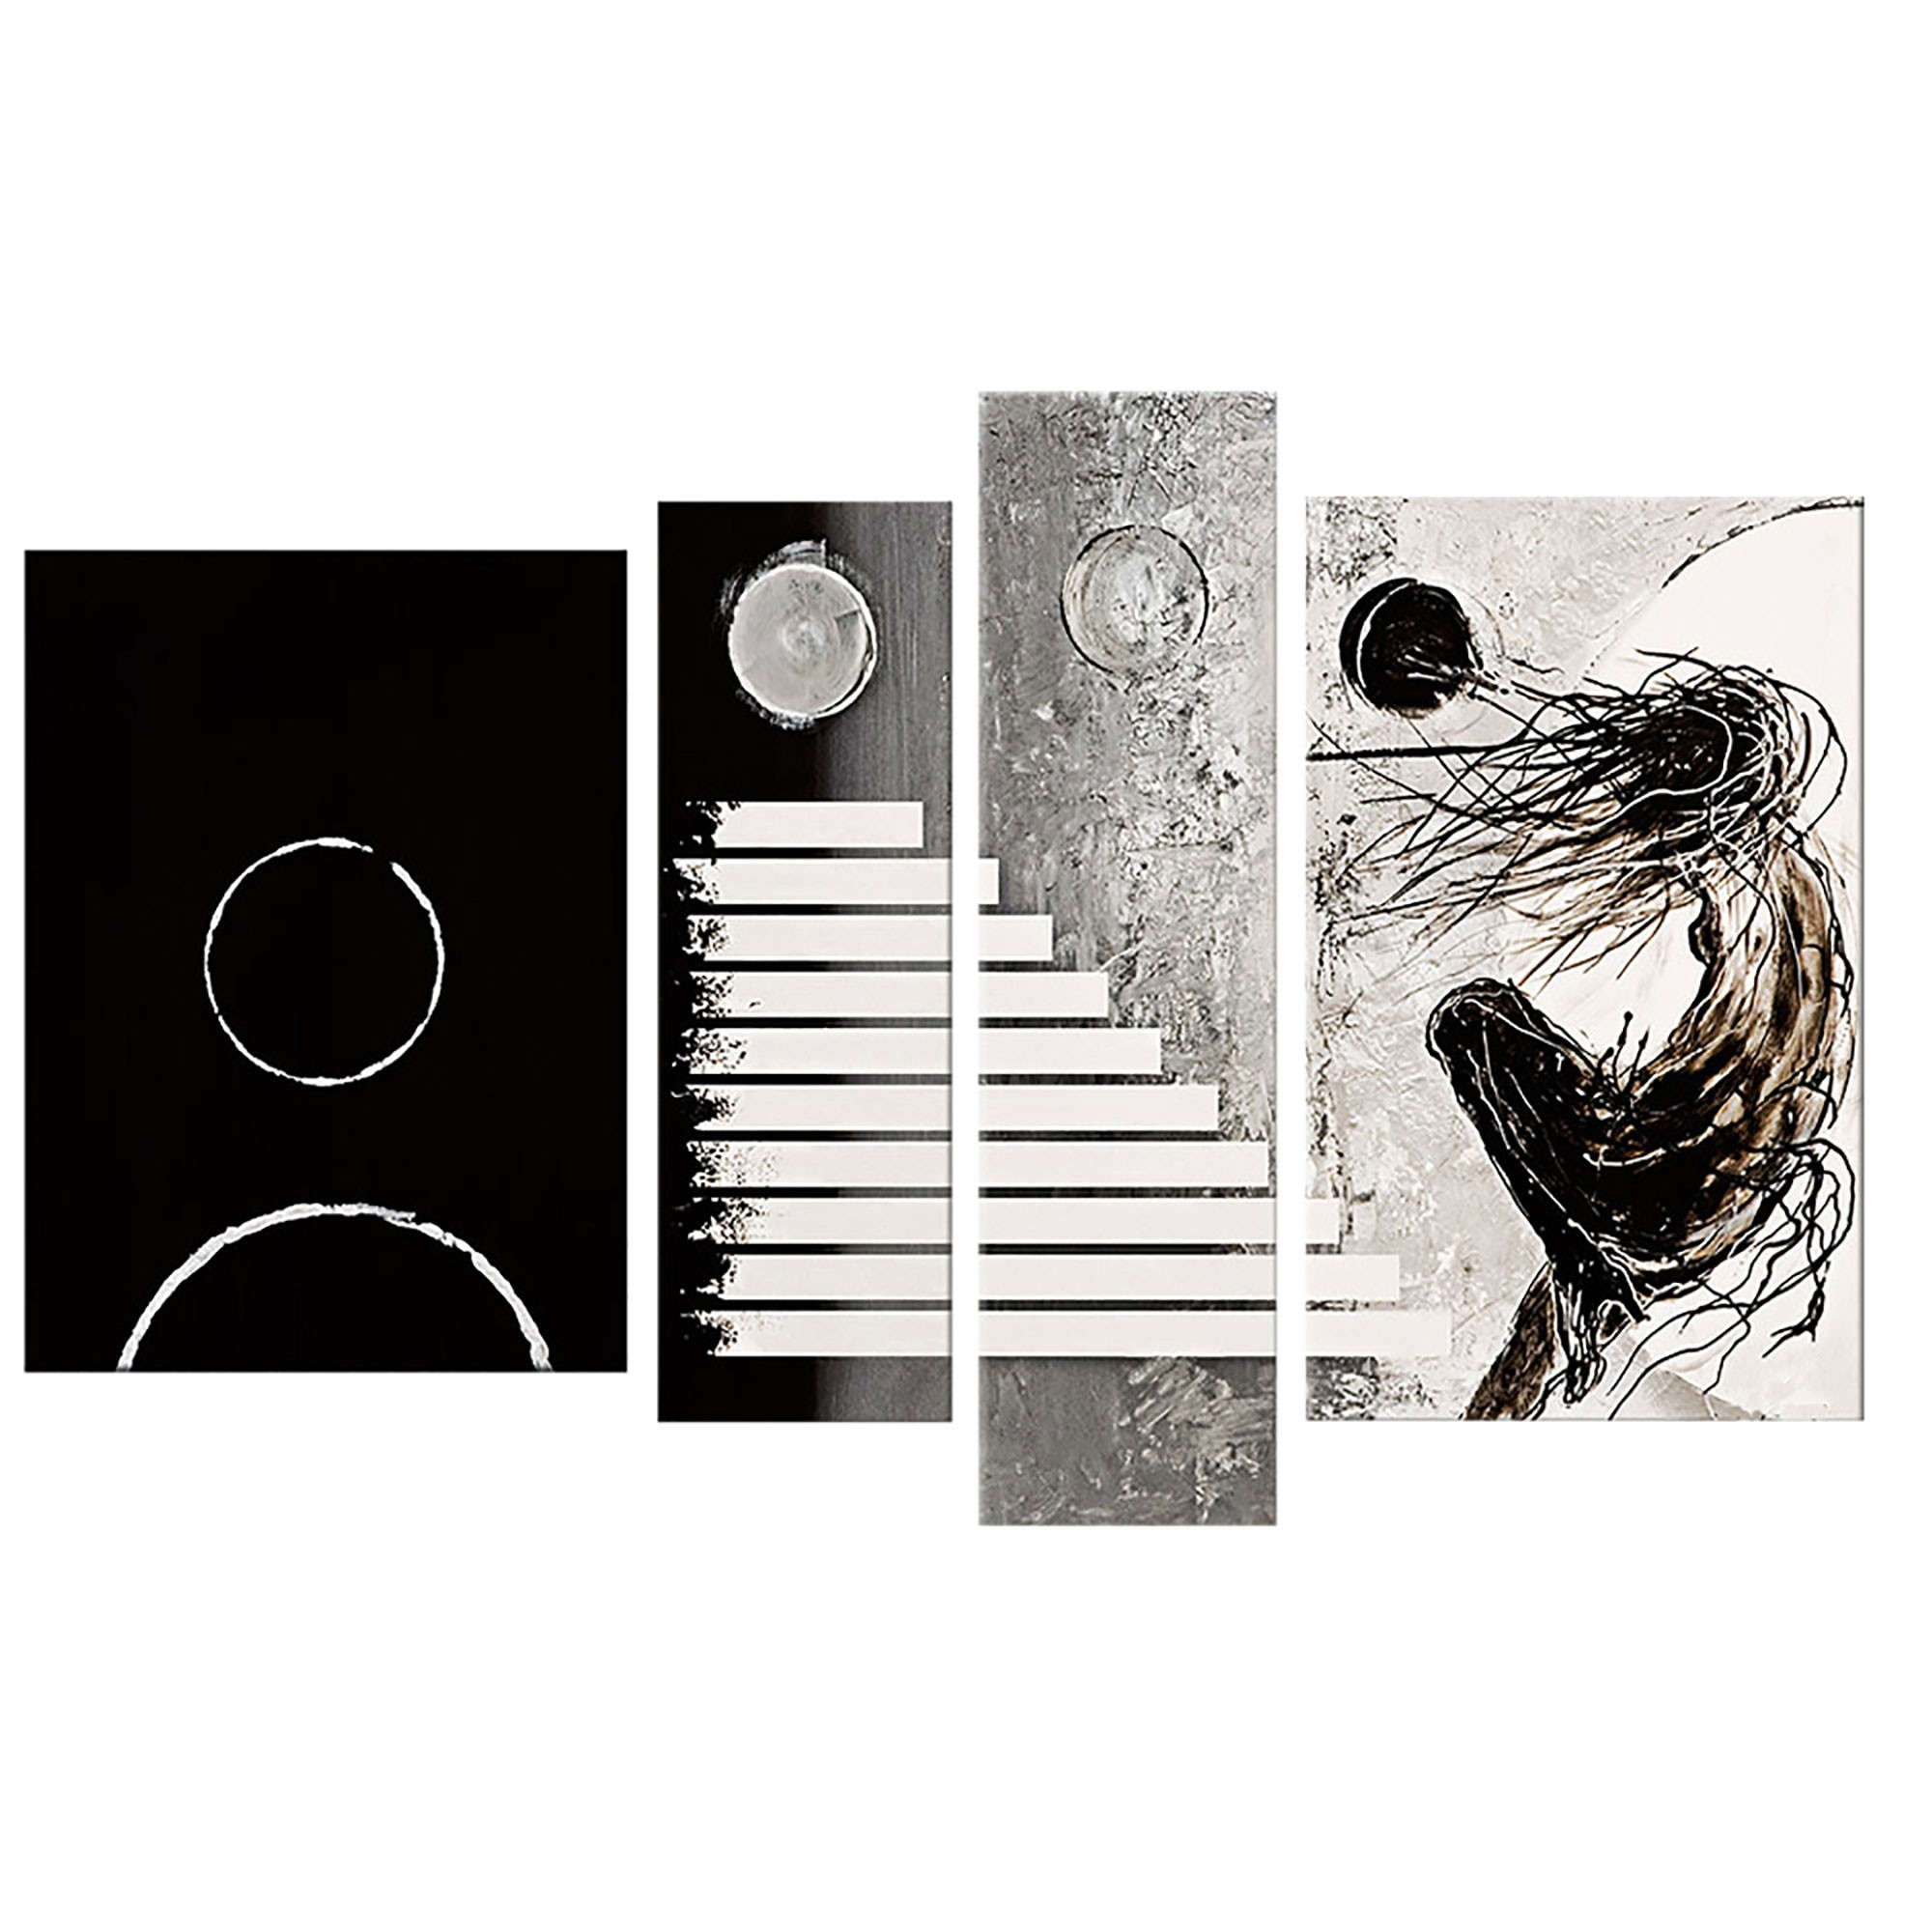 Wall Art Designs: Black And White Canvas Wall Art Black White With Regard To Most Up To Date Black And White Canvas Wall Art (View 11 of 15)